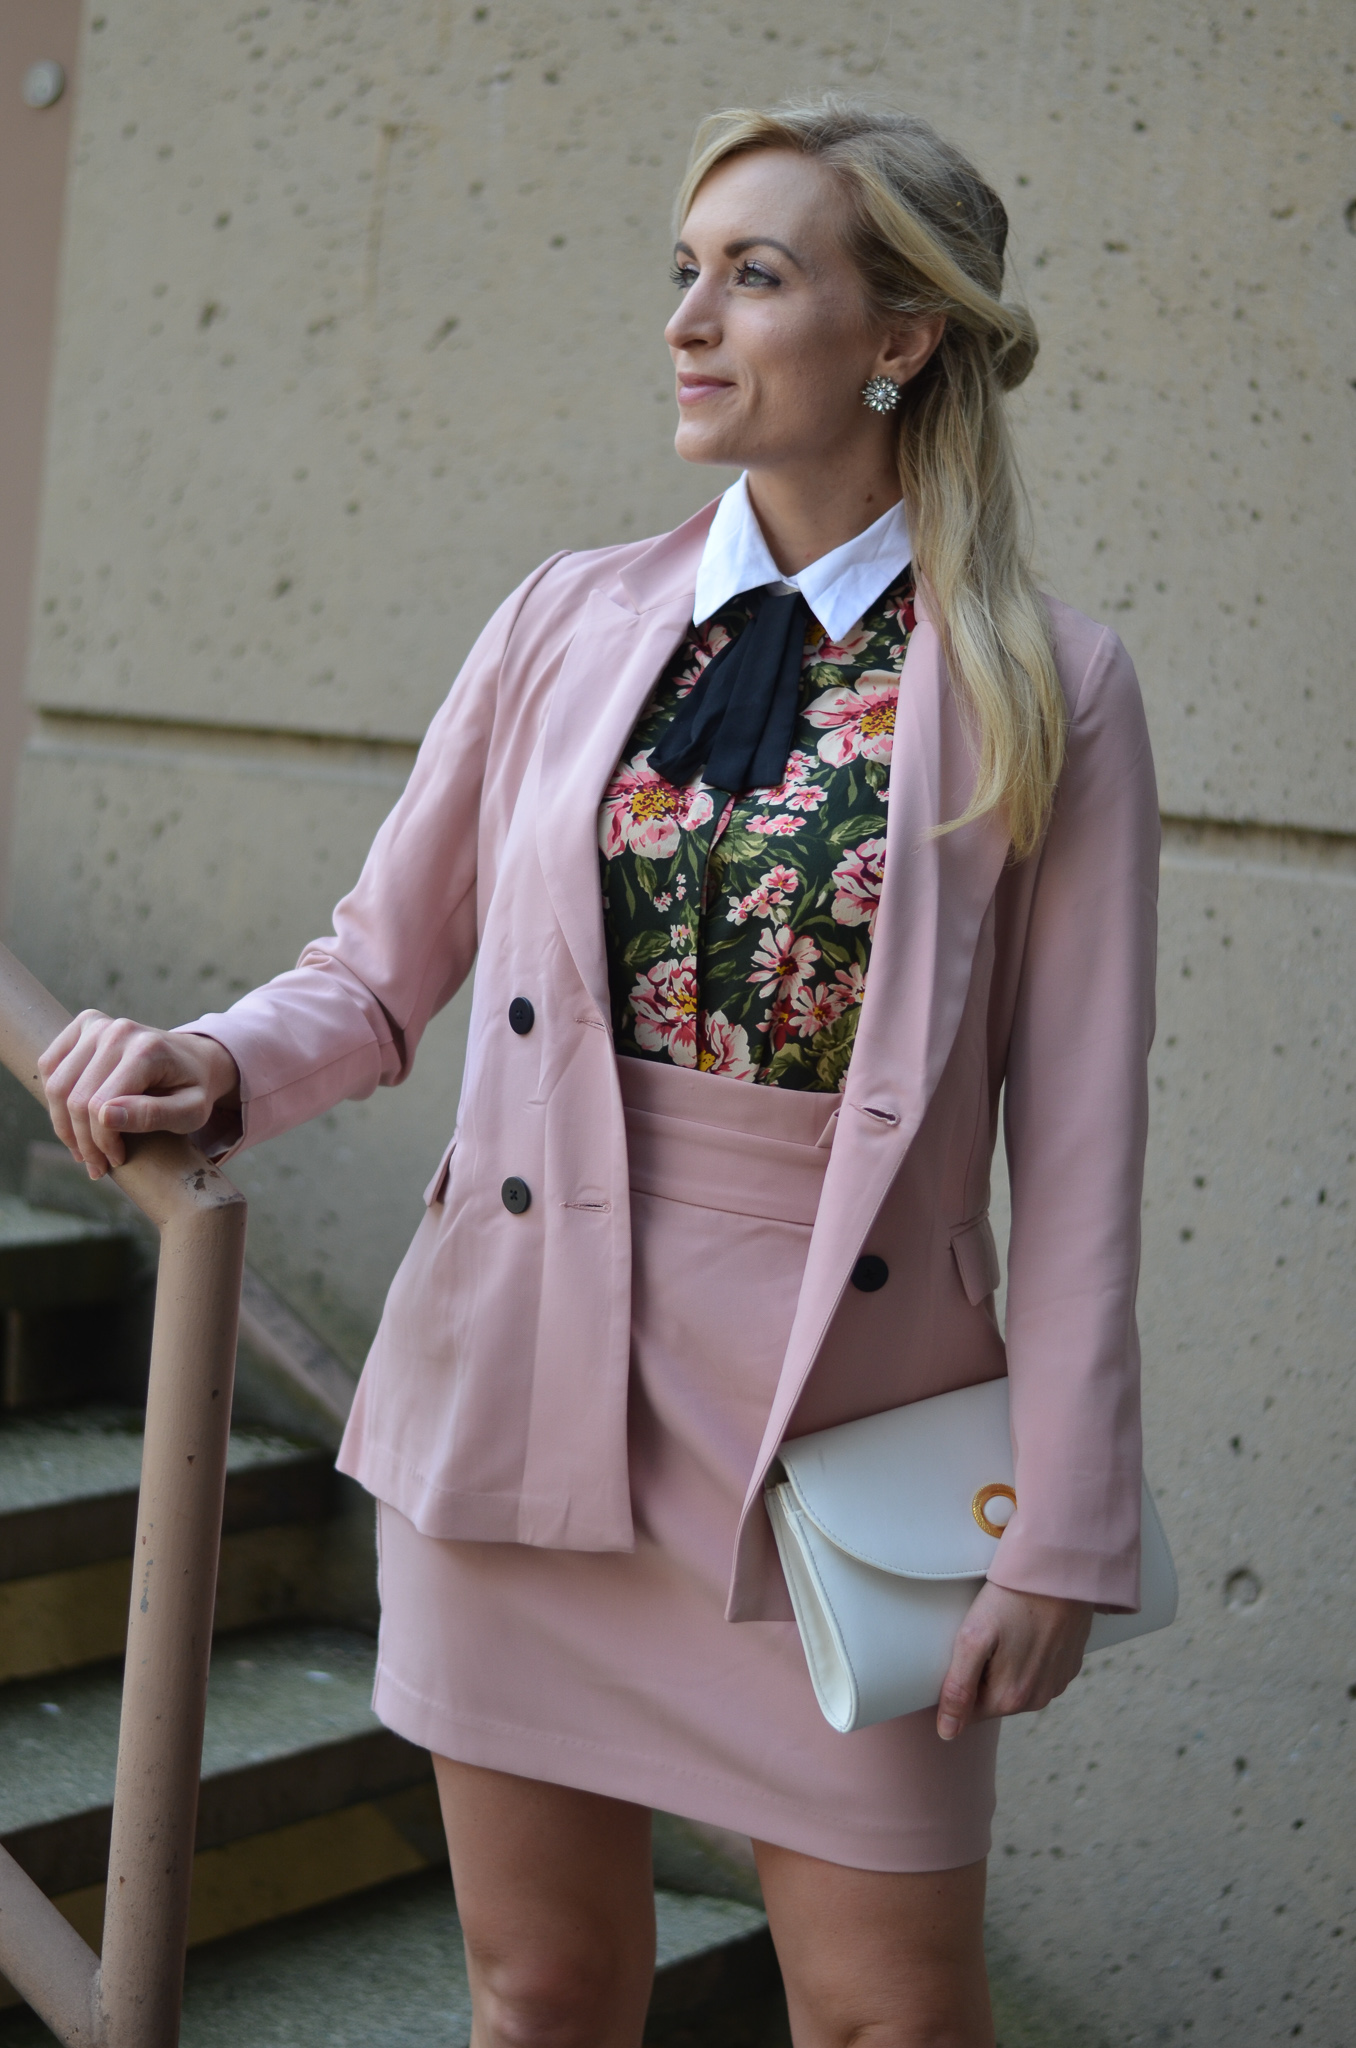 blonde woman wearing blush pink skirt suit